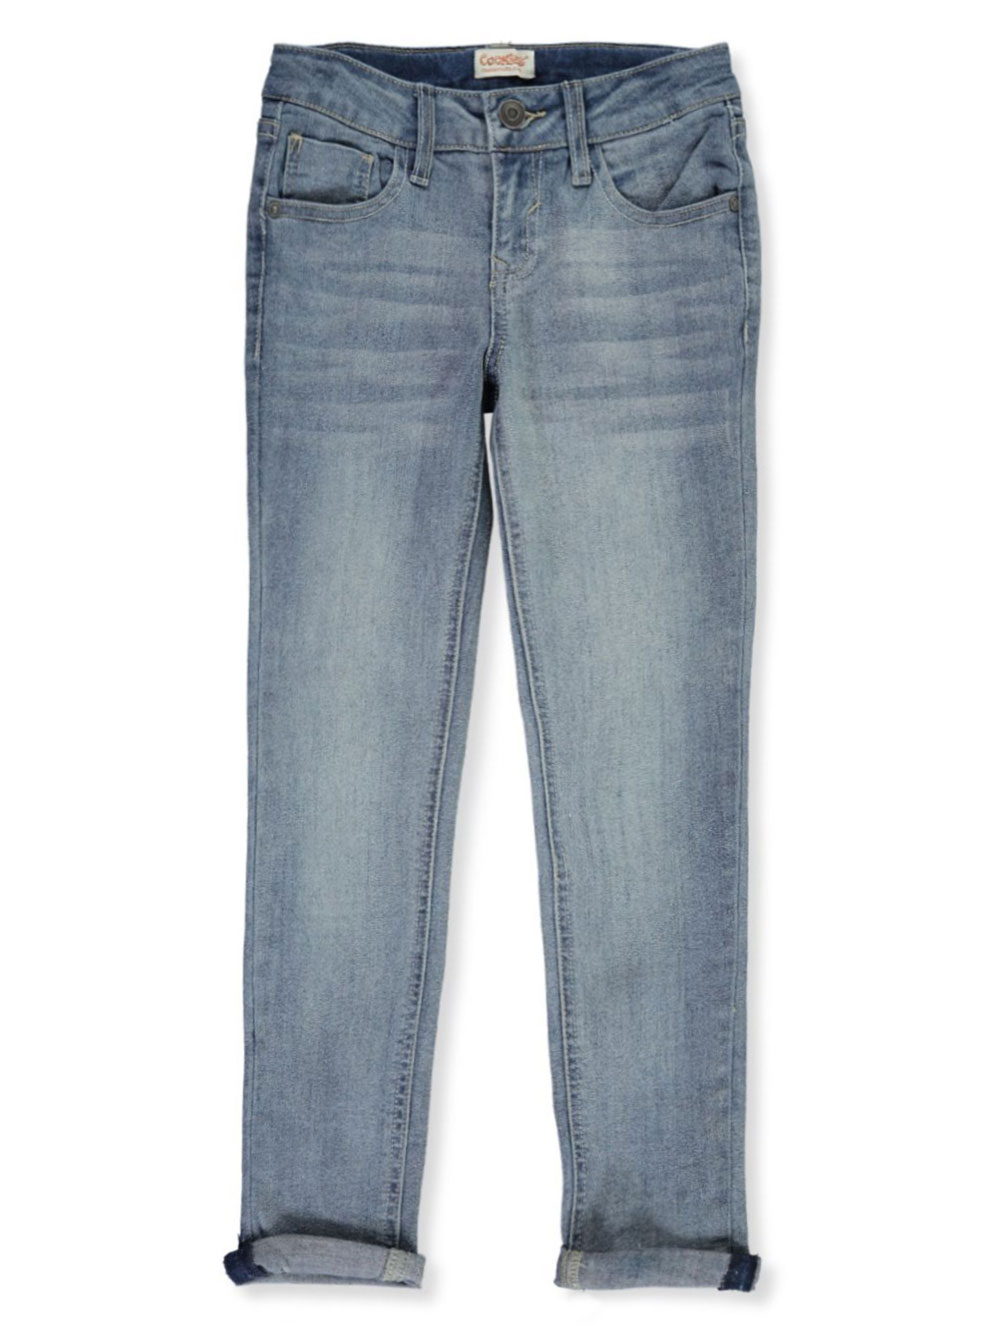 Jeans from Stretch Denim Construction